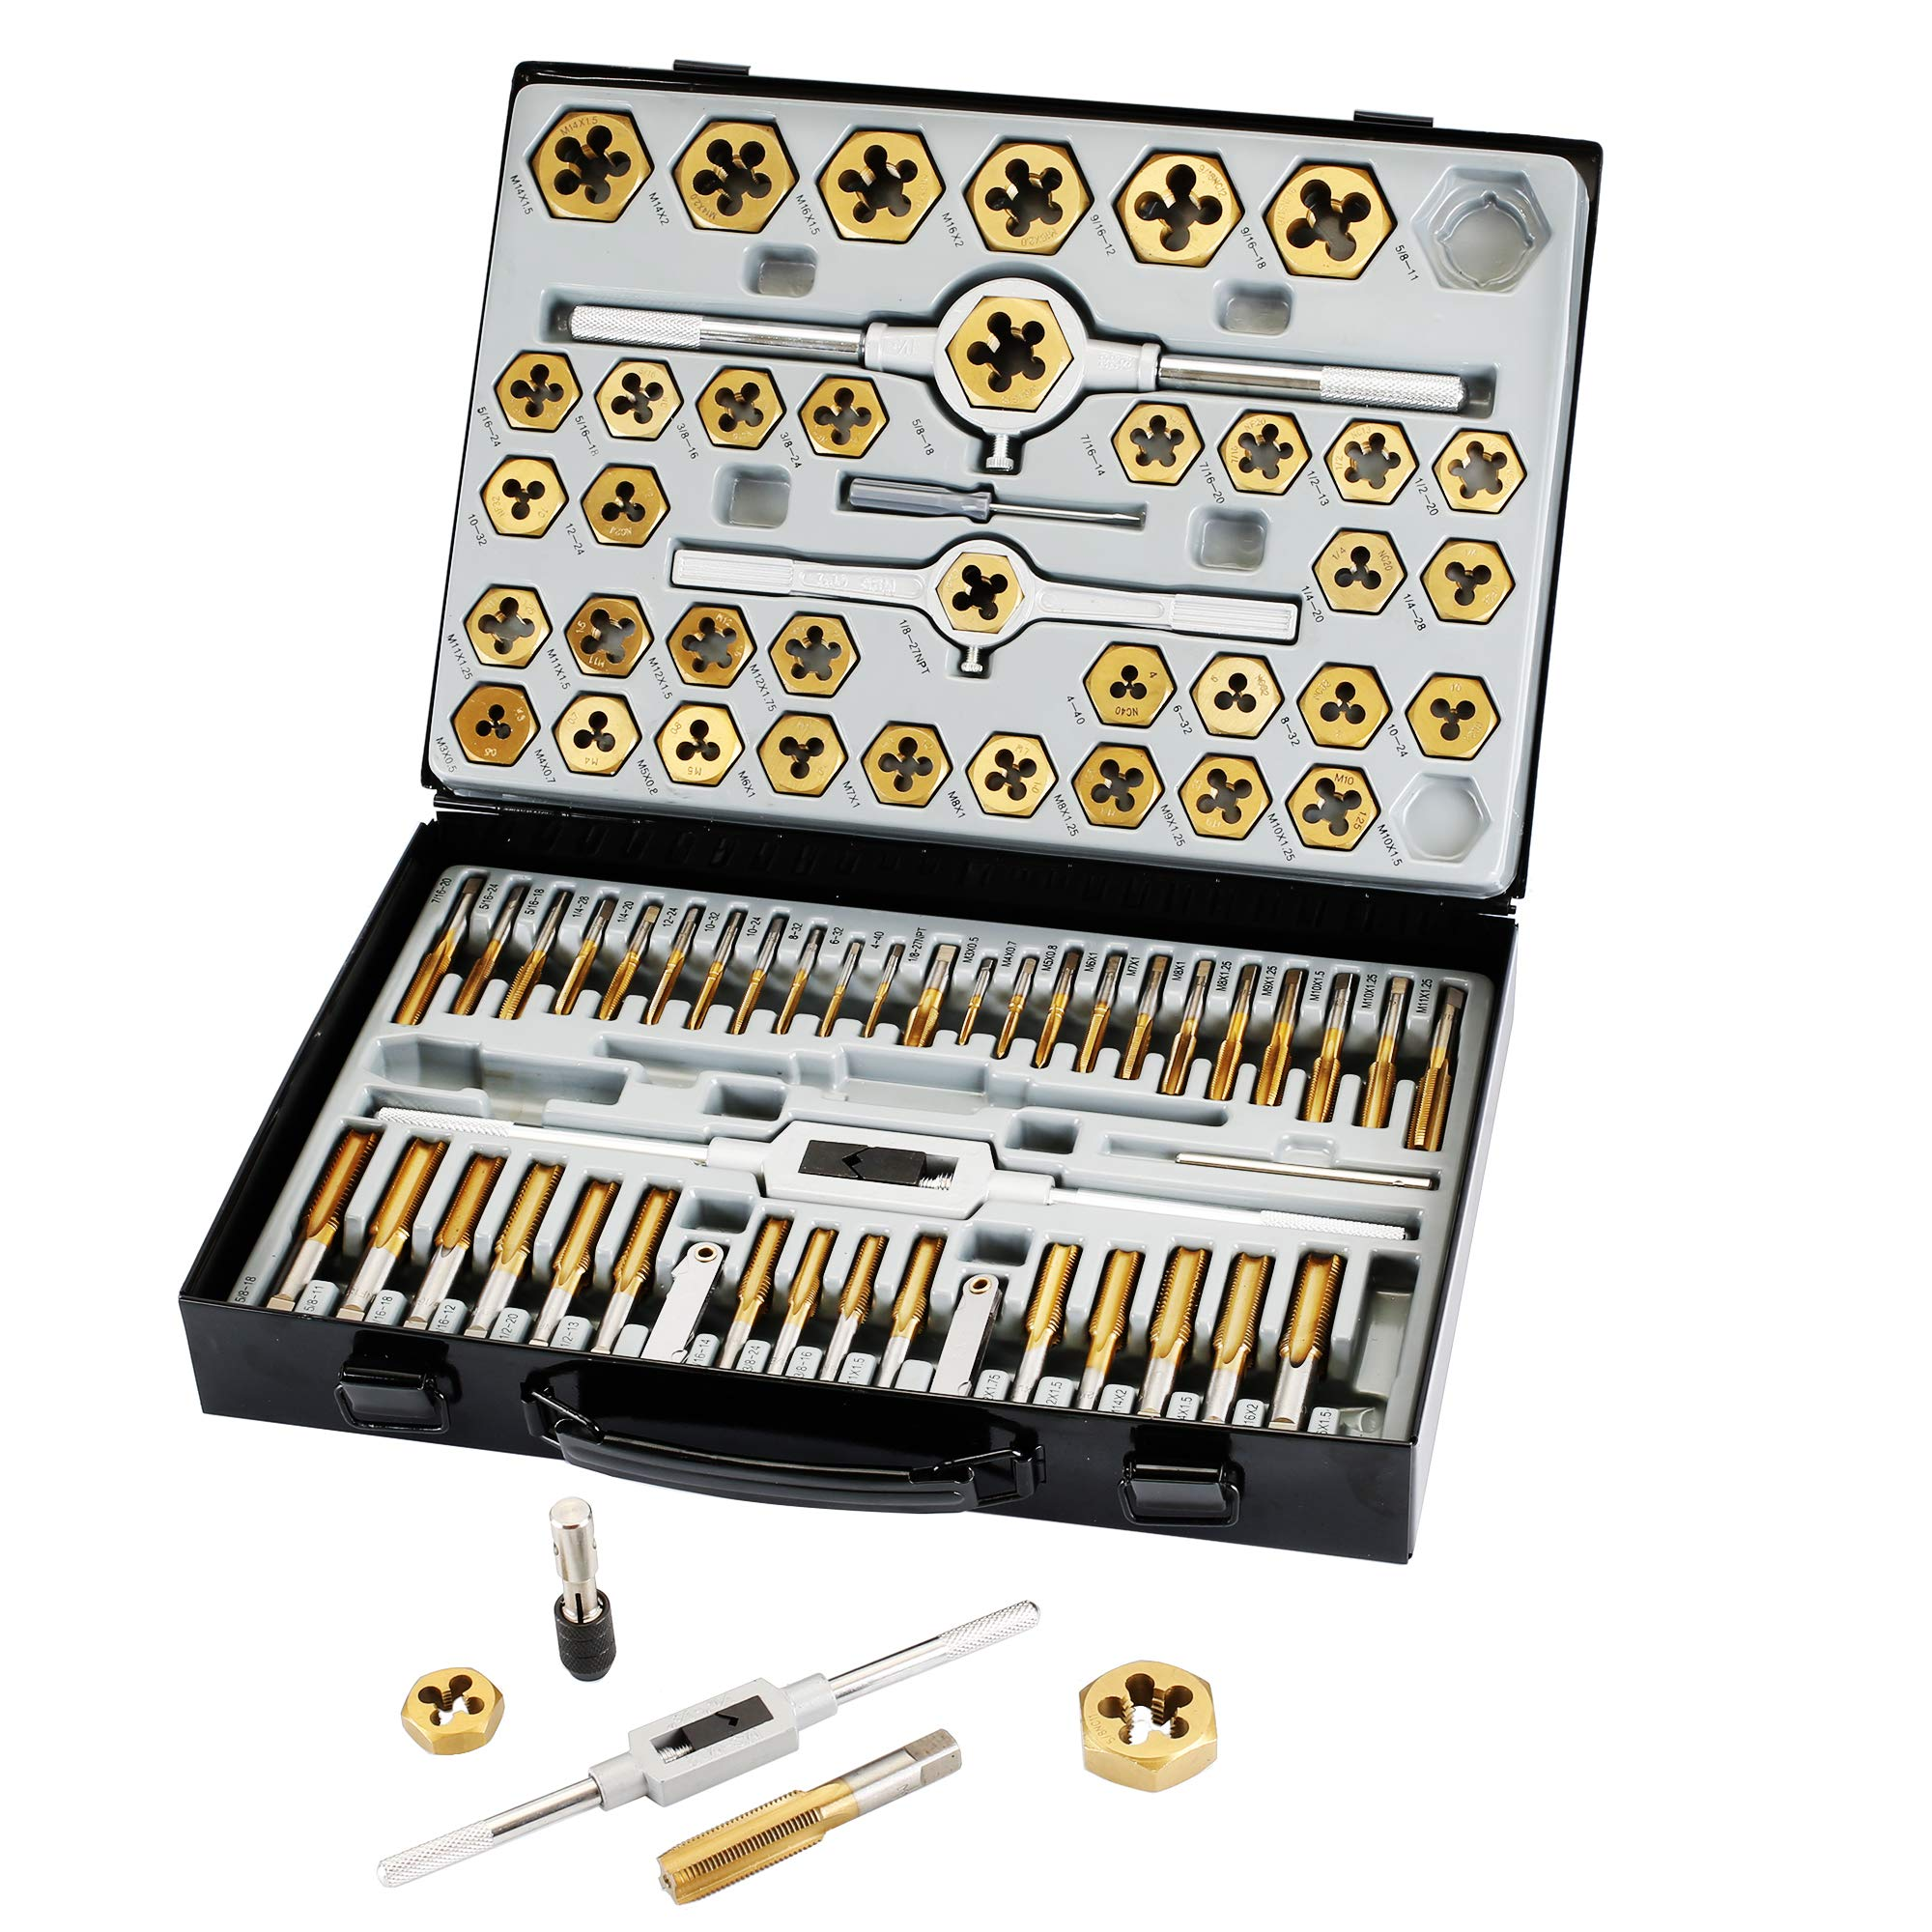 Muzerdo 86 Piece Tap and Die Set Bearing Steel Sae and Metric Tools, Titanium Coated with Metal Carrying Case by Muzerdo